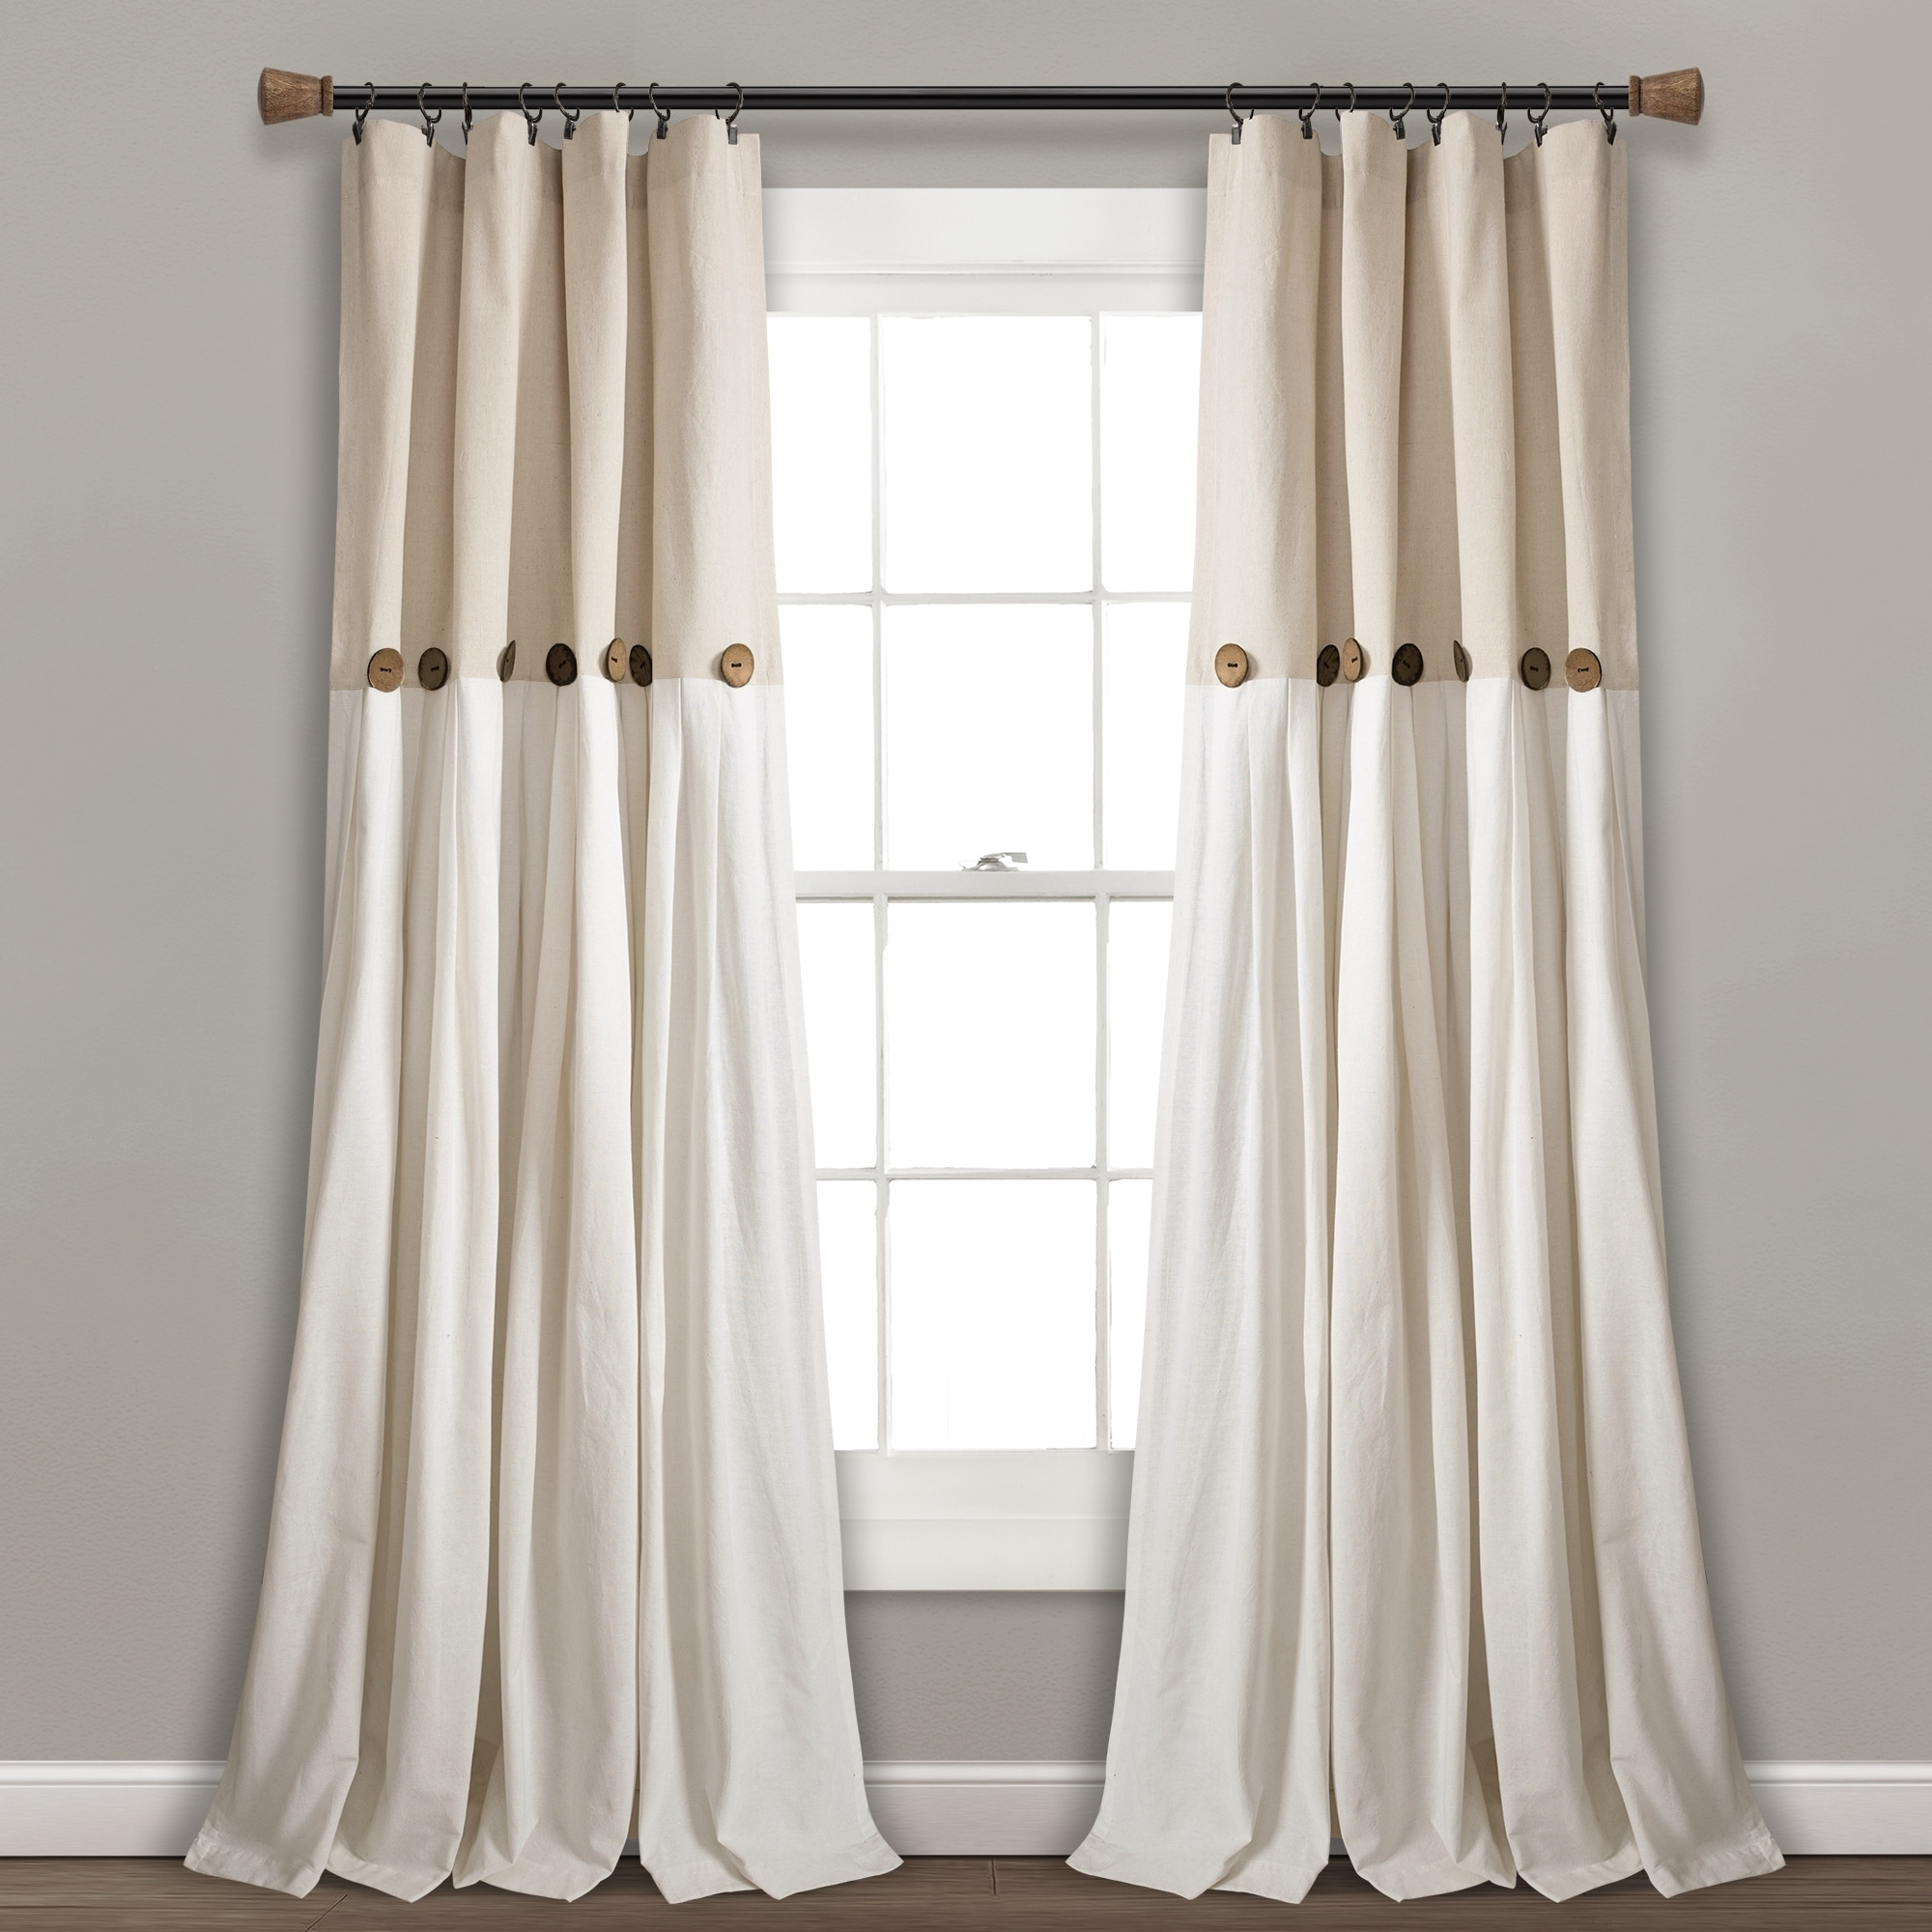 Buy Curtains & Ds Online at Overstock   Our Best Window ... on country kitchen curtains ideas, unique kitchen curtain ideas, curtains for kitchen cabinets, curtains for halloween, curtains for bedroom furniture, simple kitchen curtain ideas, wallpaper for kitchen ideas, curtains for kitchen cupboards, homemade kitchen curtain ideas, kitchen sink window curtains ideas, curtains for country kitchen, lighting for kitchen ideas, kitchen curtains and valances ideas, sheer kitchen curtains ideas, curtains for modern kitchen, curtains for windows, modern kitchen curtains ideas, curtains for doors, curtains for home, interior design for kitchen ideas,